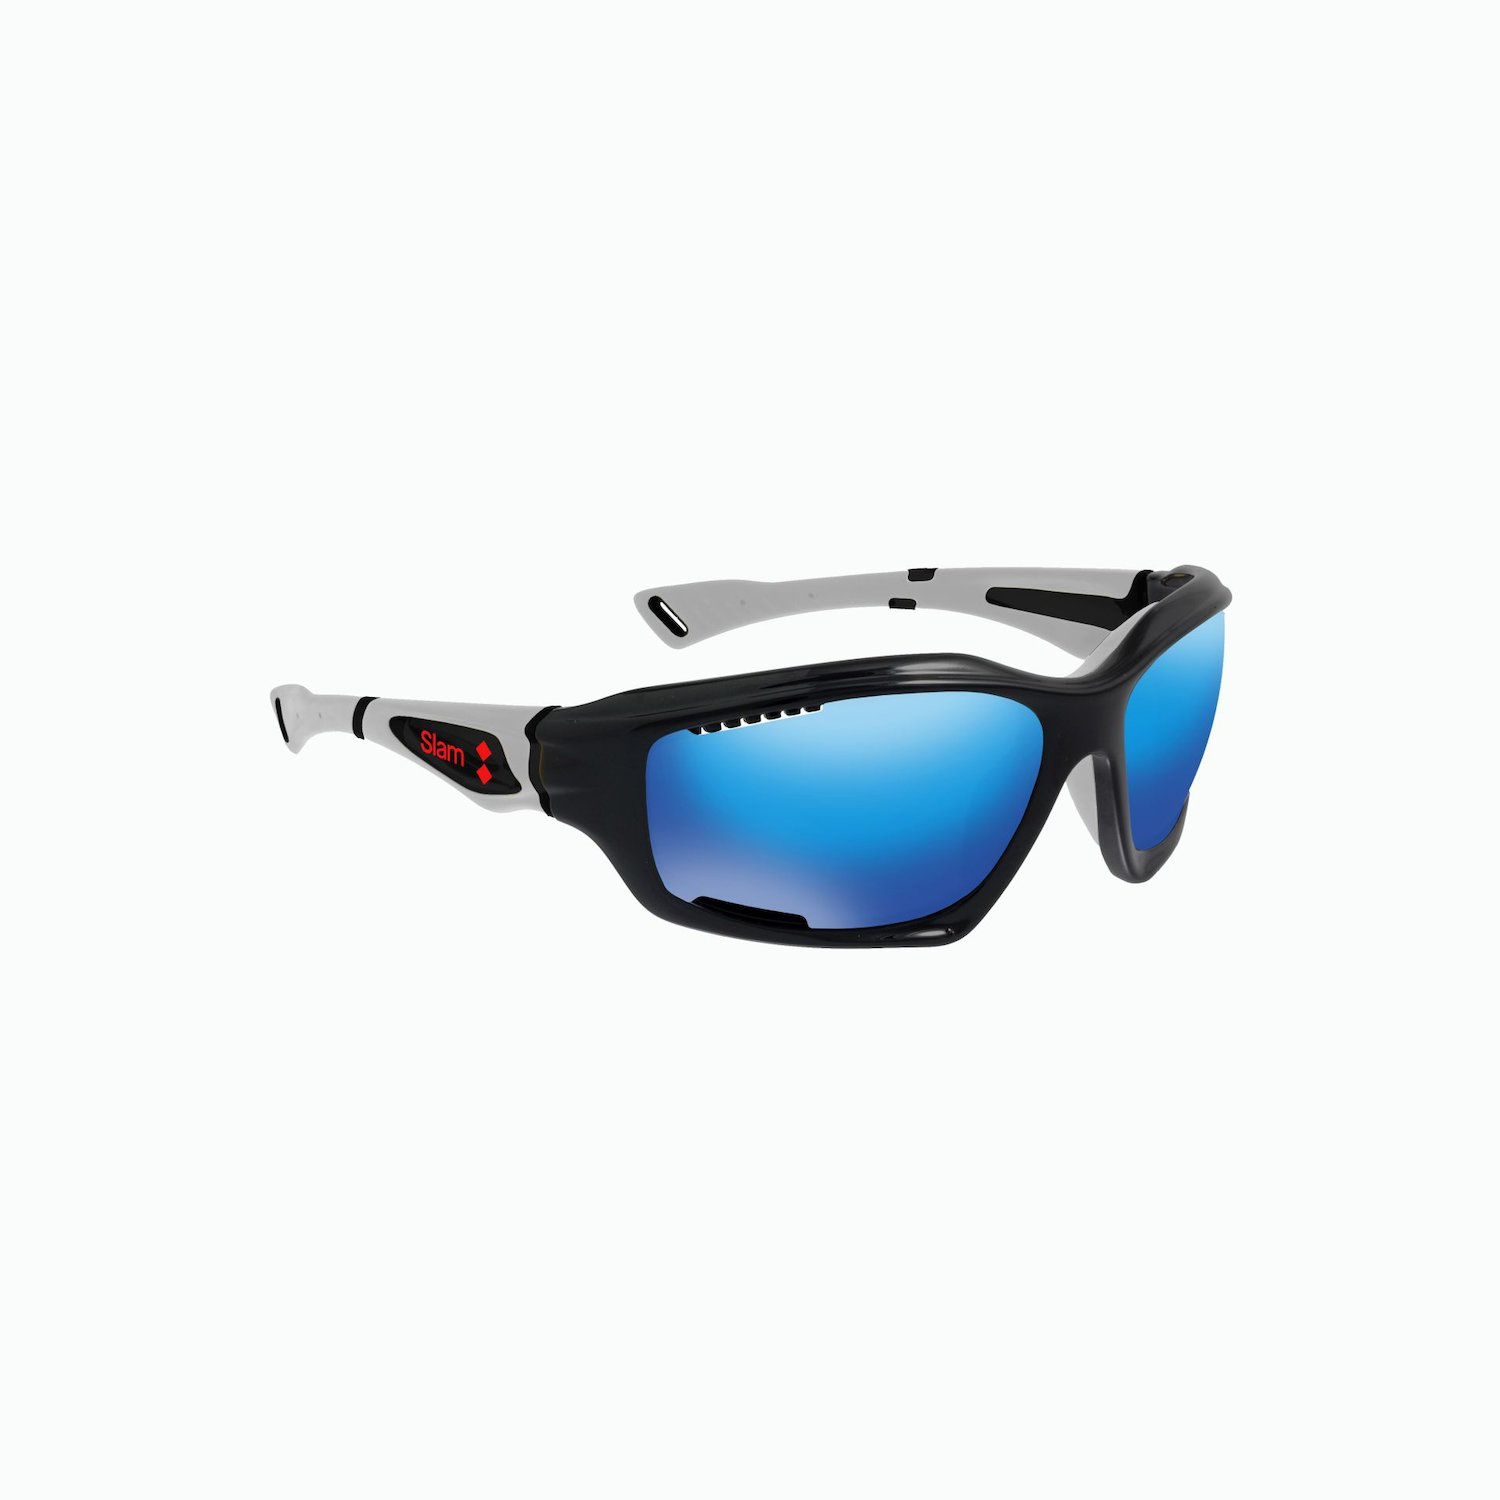 Pro Sunglasses - Light Grey / Black / Blue